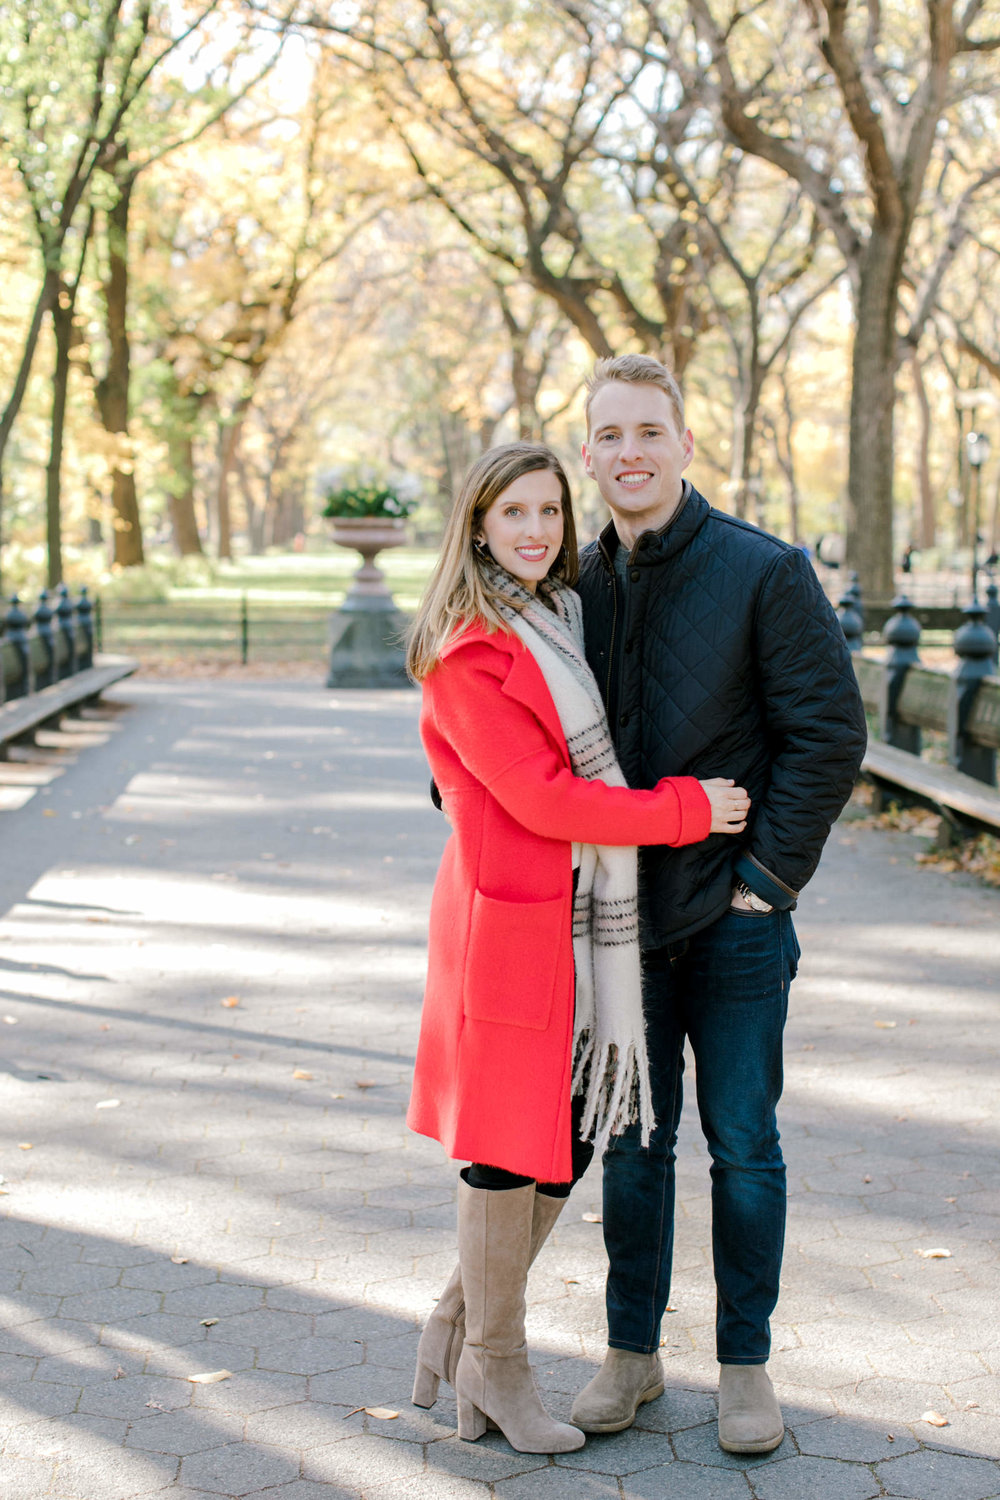 Central-park-fall-engagement-session-by Tanya Isaeva-61.jpg